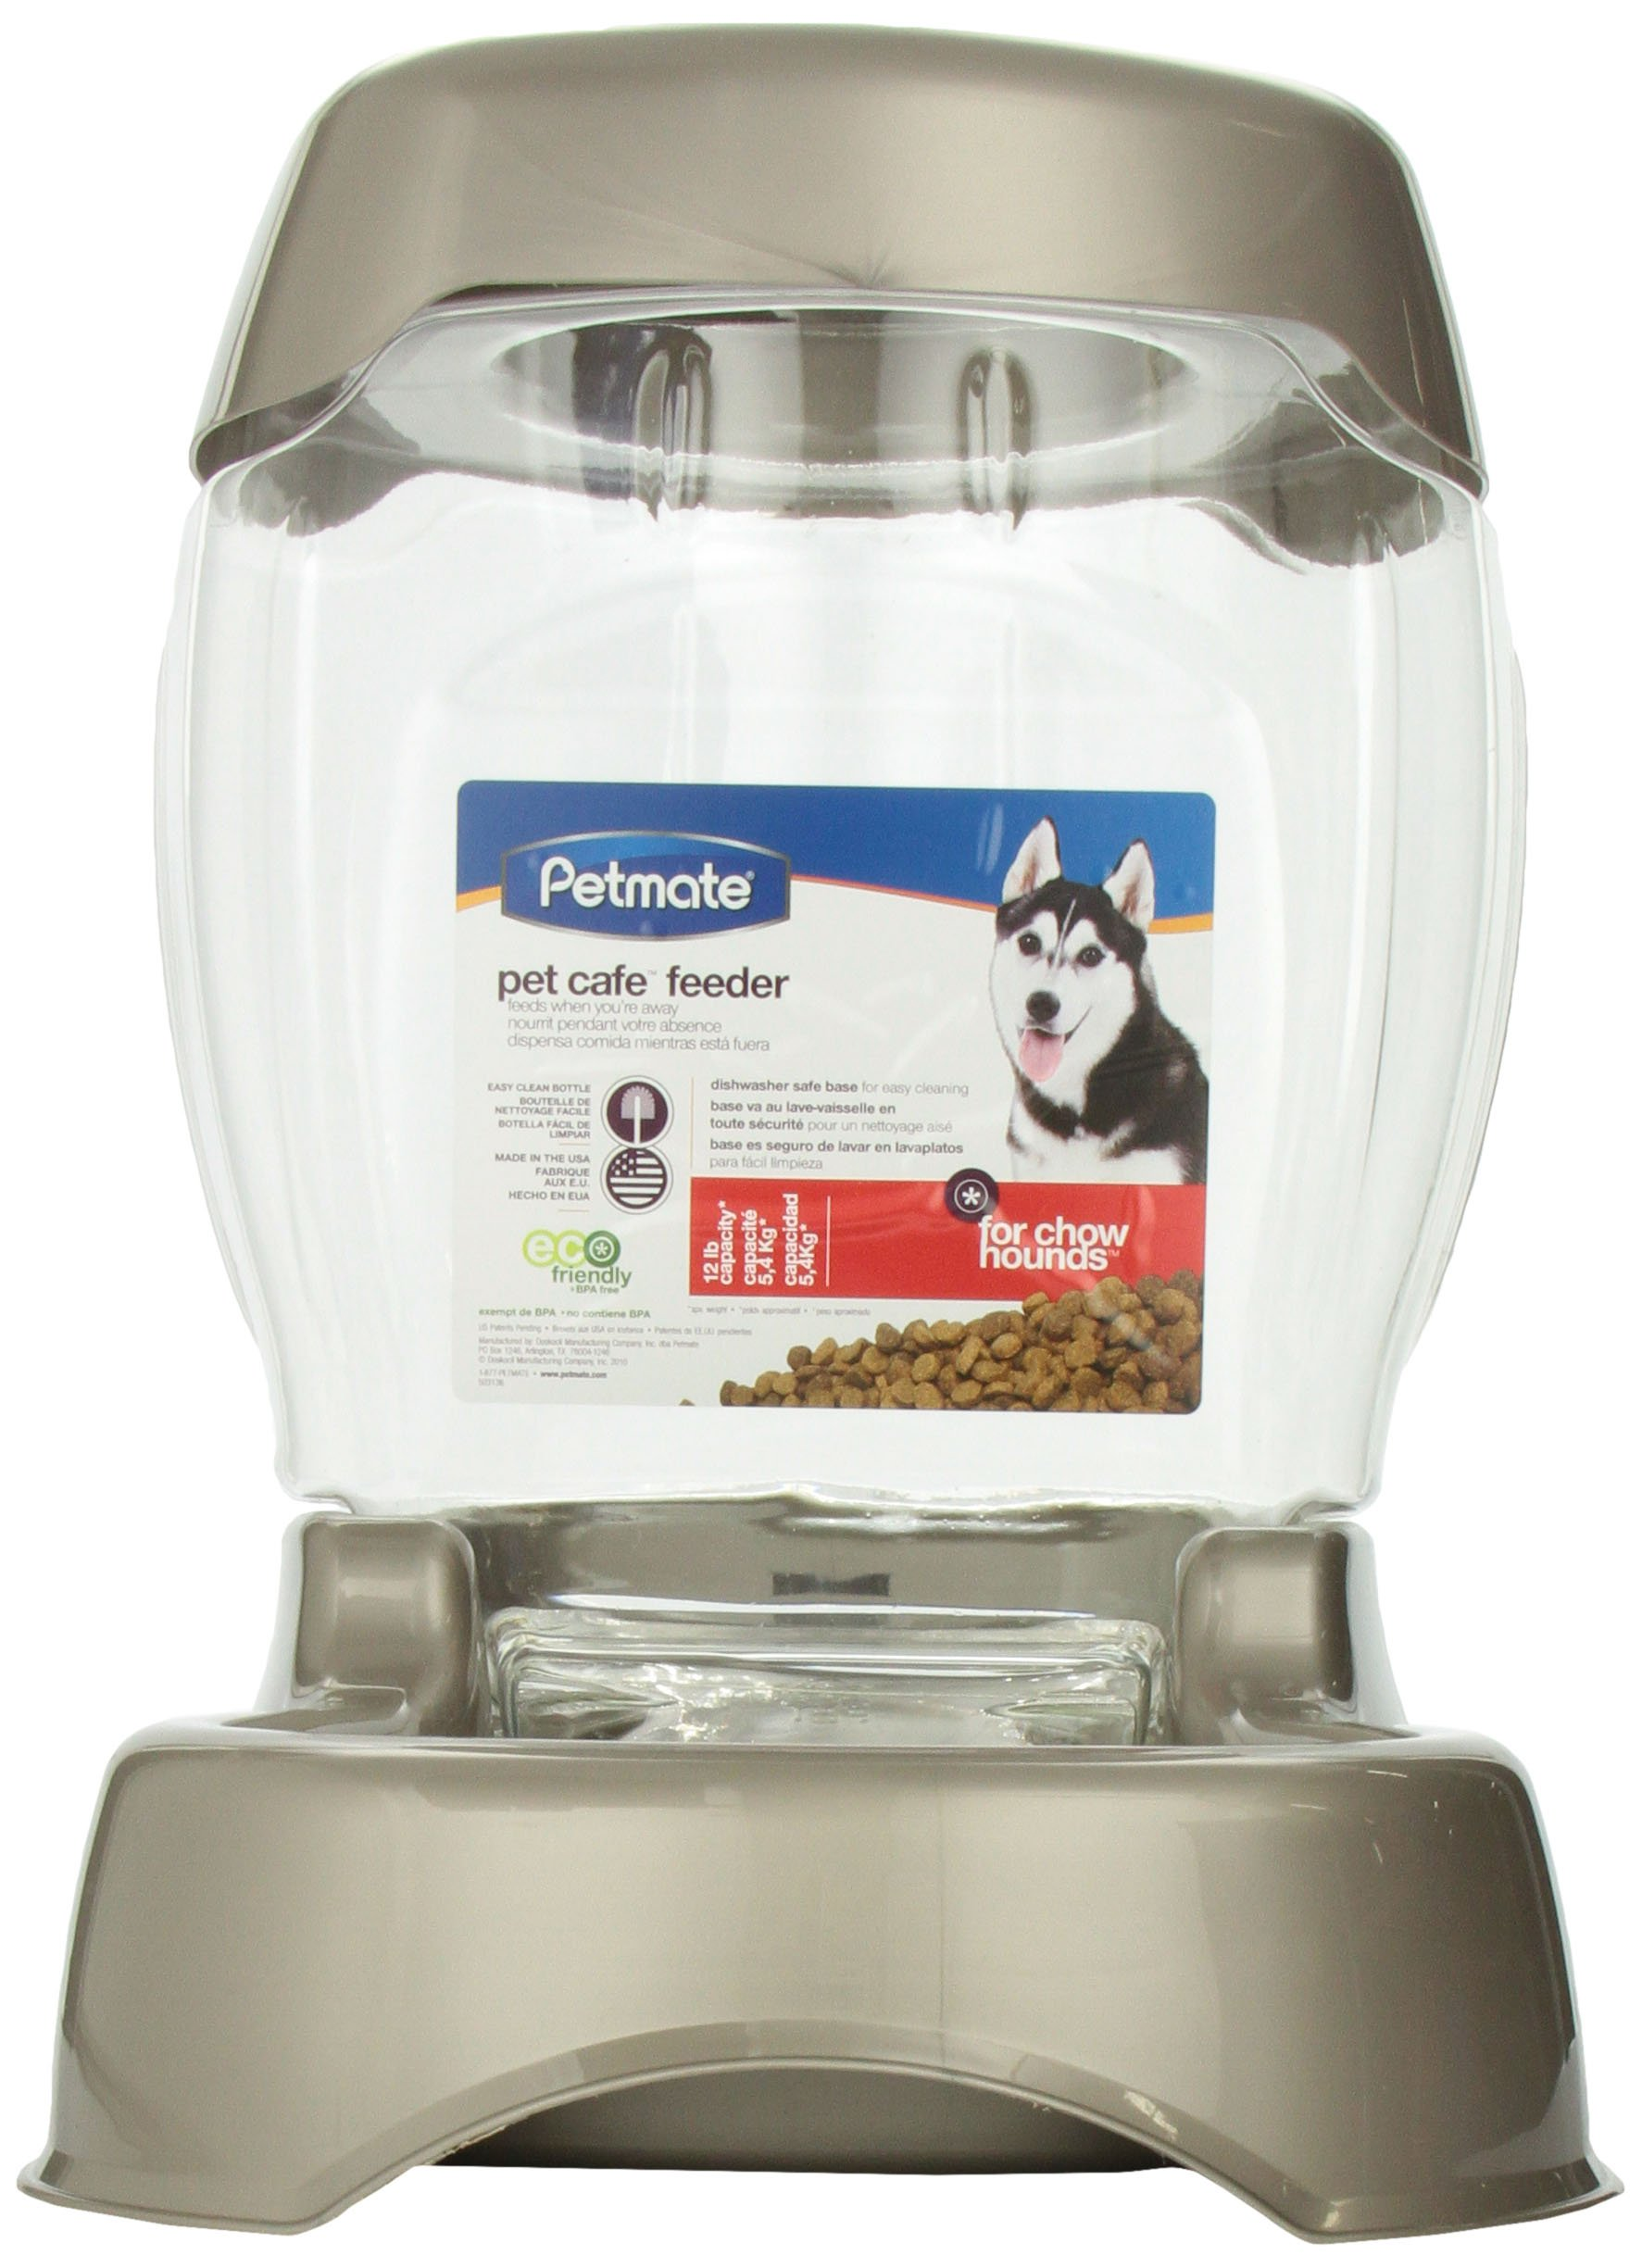 x auto feeder cat programmable slunickosworld exceptional dog out with timer locked com pet